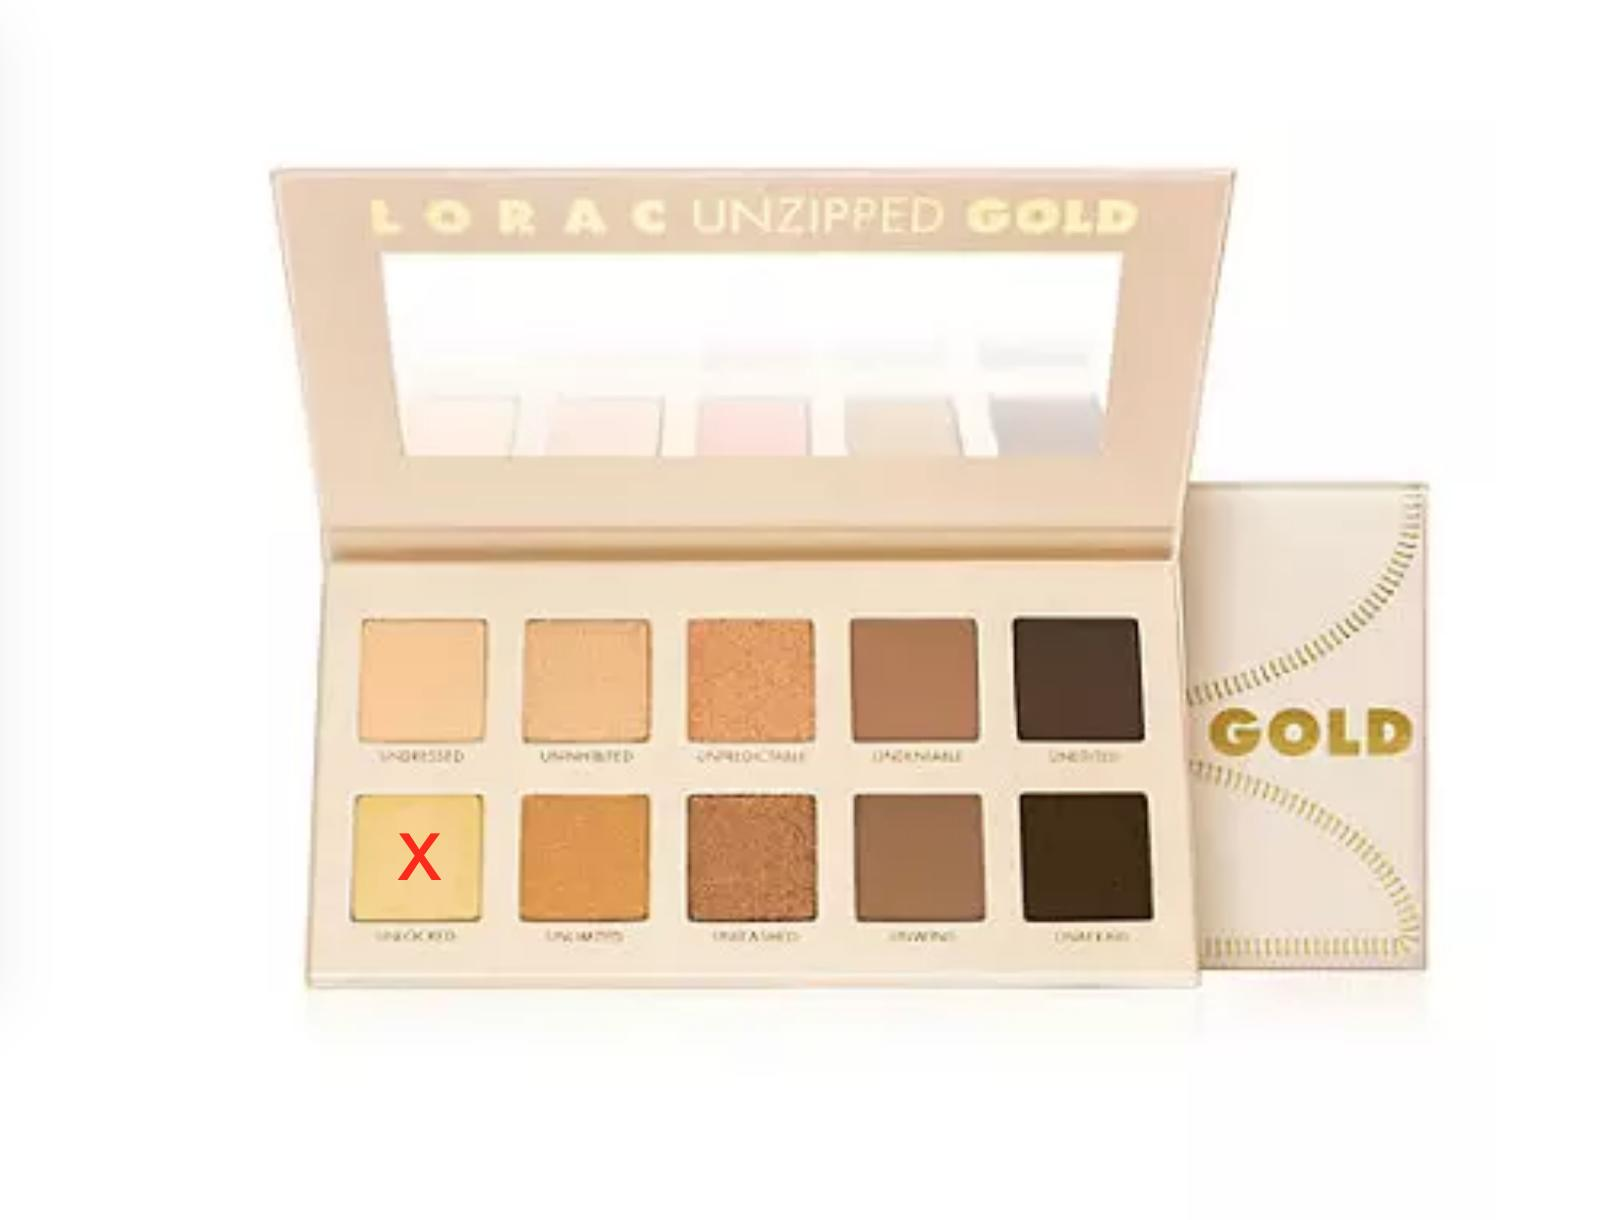 LORAC Unzipped Gold Palette (without unlocked)